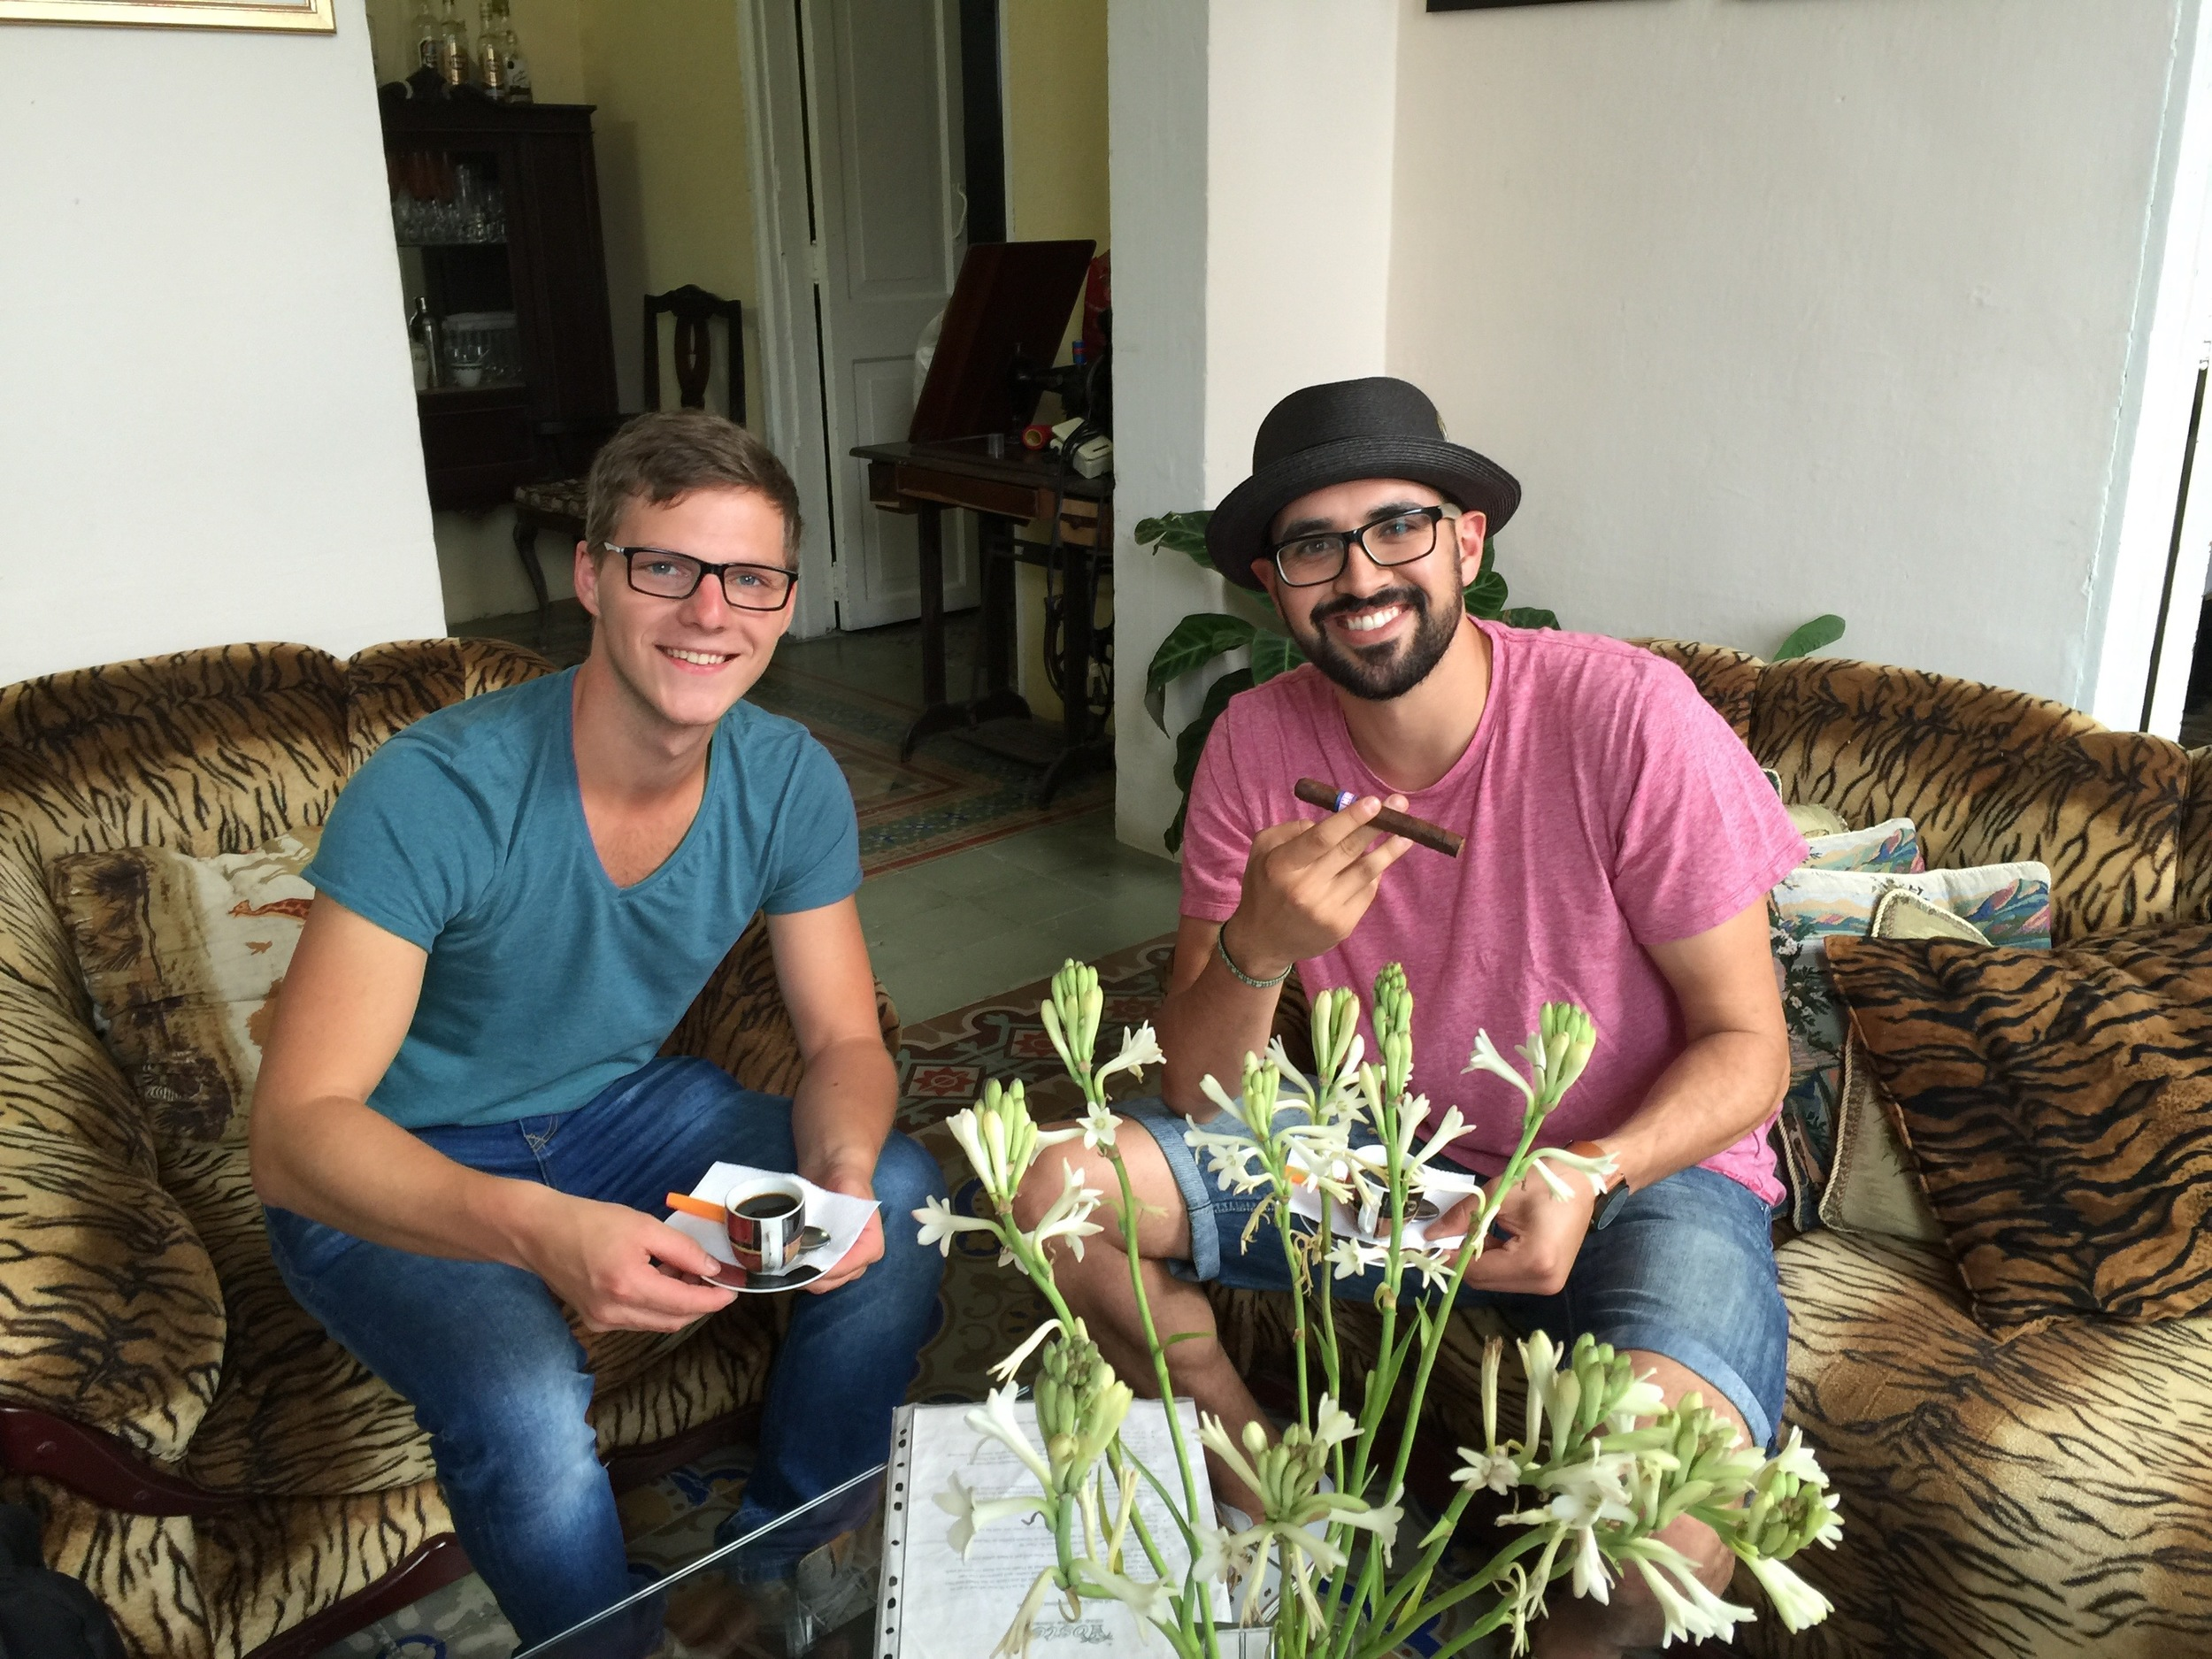 My German friend Manuel and I enjoying our first Cuban coffee and cigar at our hostel in Havana.